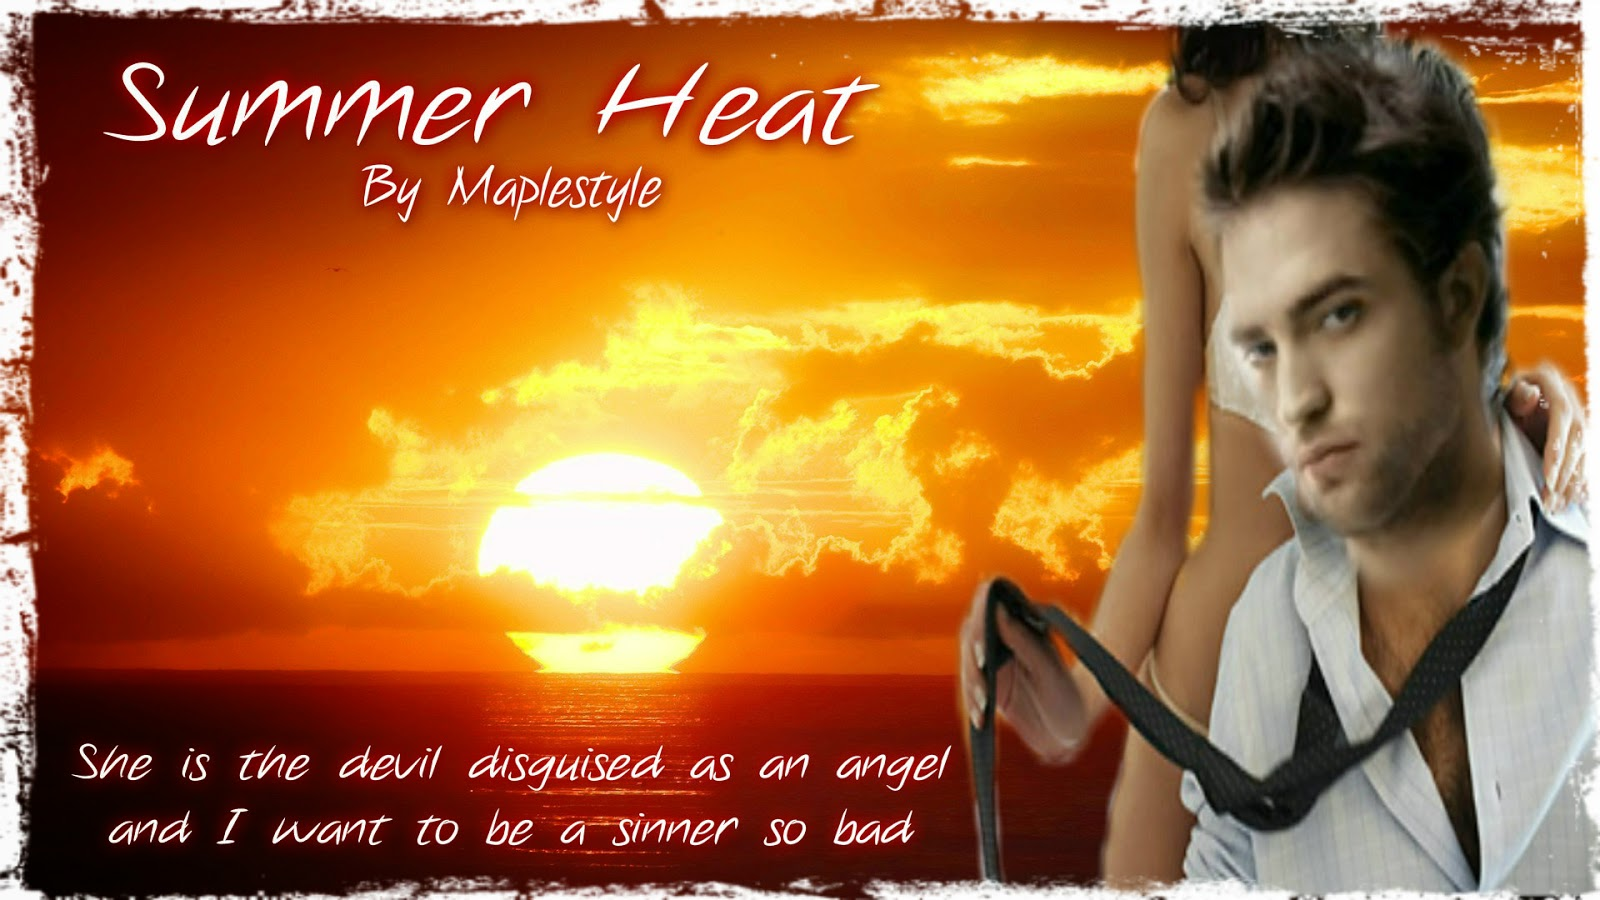 https://www.fanfiction.net/s/10290562/1/Summer-Heat